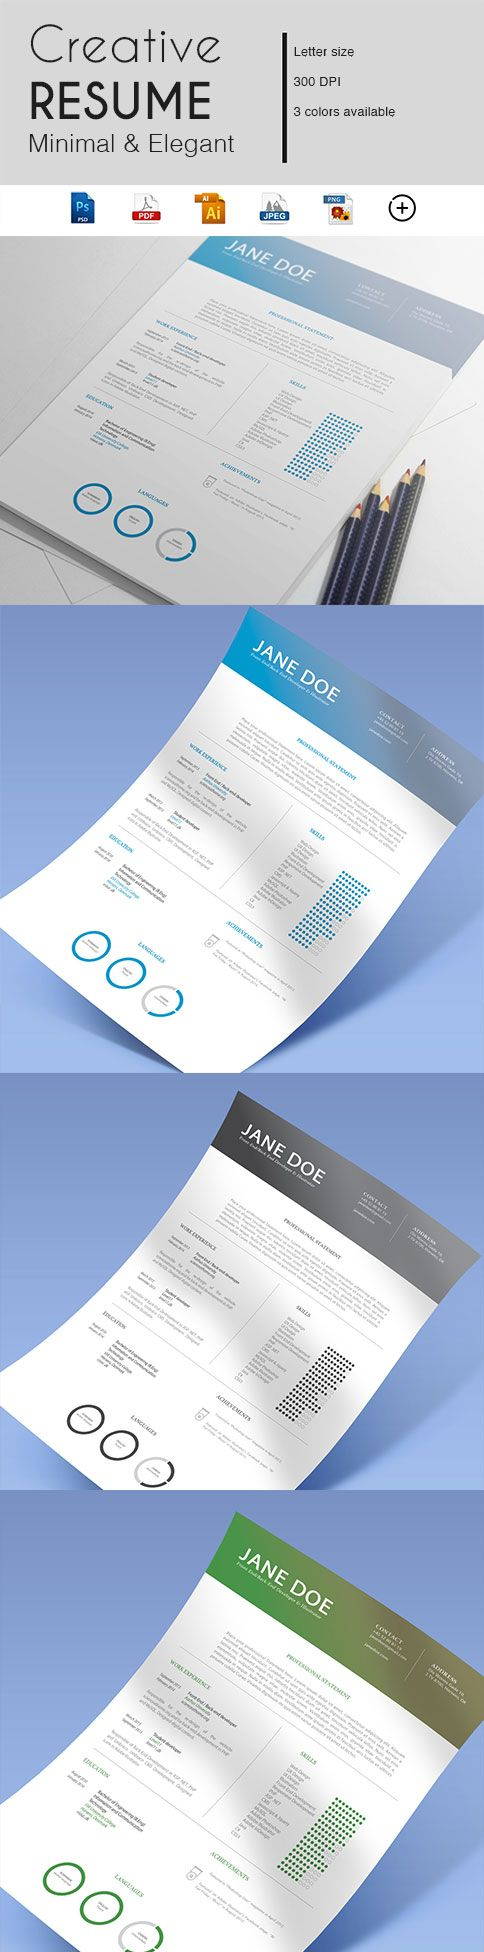 Gabellare | Get into action and make a great first impression with our resume template.  During a job search, your resume plays a major role. If you just started searching for a job or simply looking to present yourself with the professional look your employers are hoping for, make sure you give a great impression with an eye catching resume design.